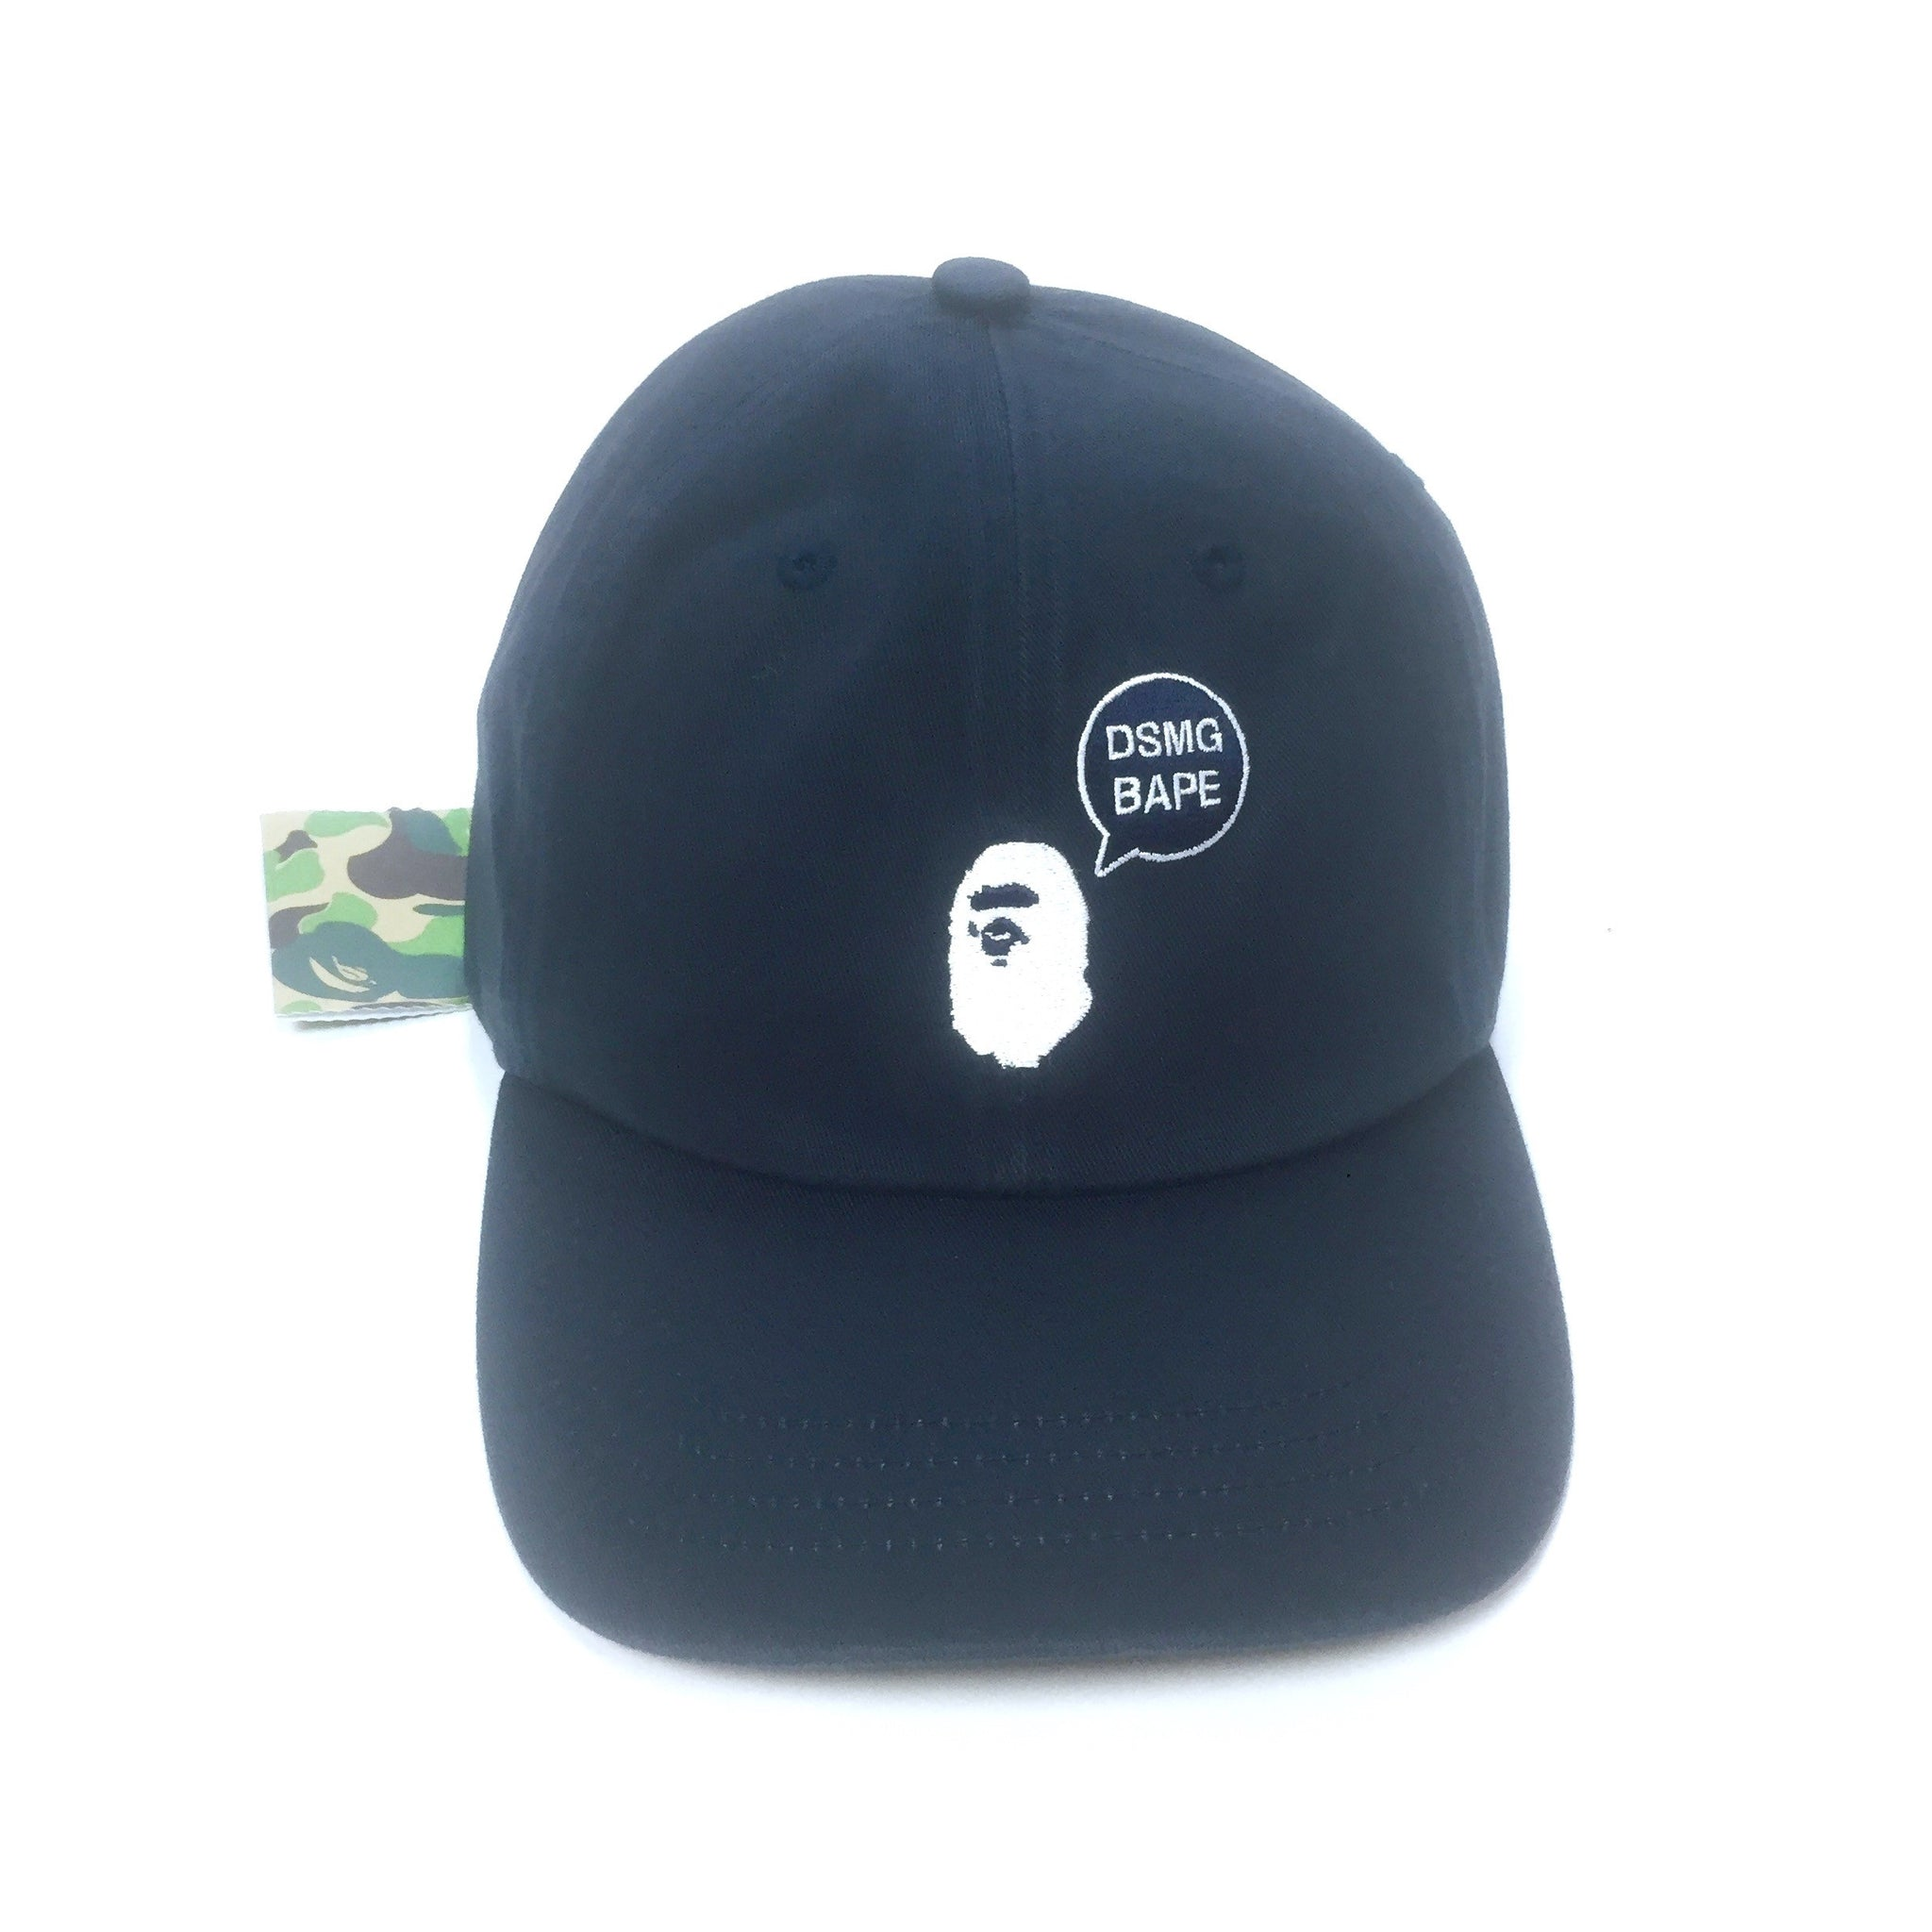 038d63319 A Bathing Ape x DSM Ginza - Navy Bape DSMG Logo Embroidered Dad Hat ...